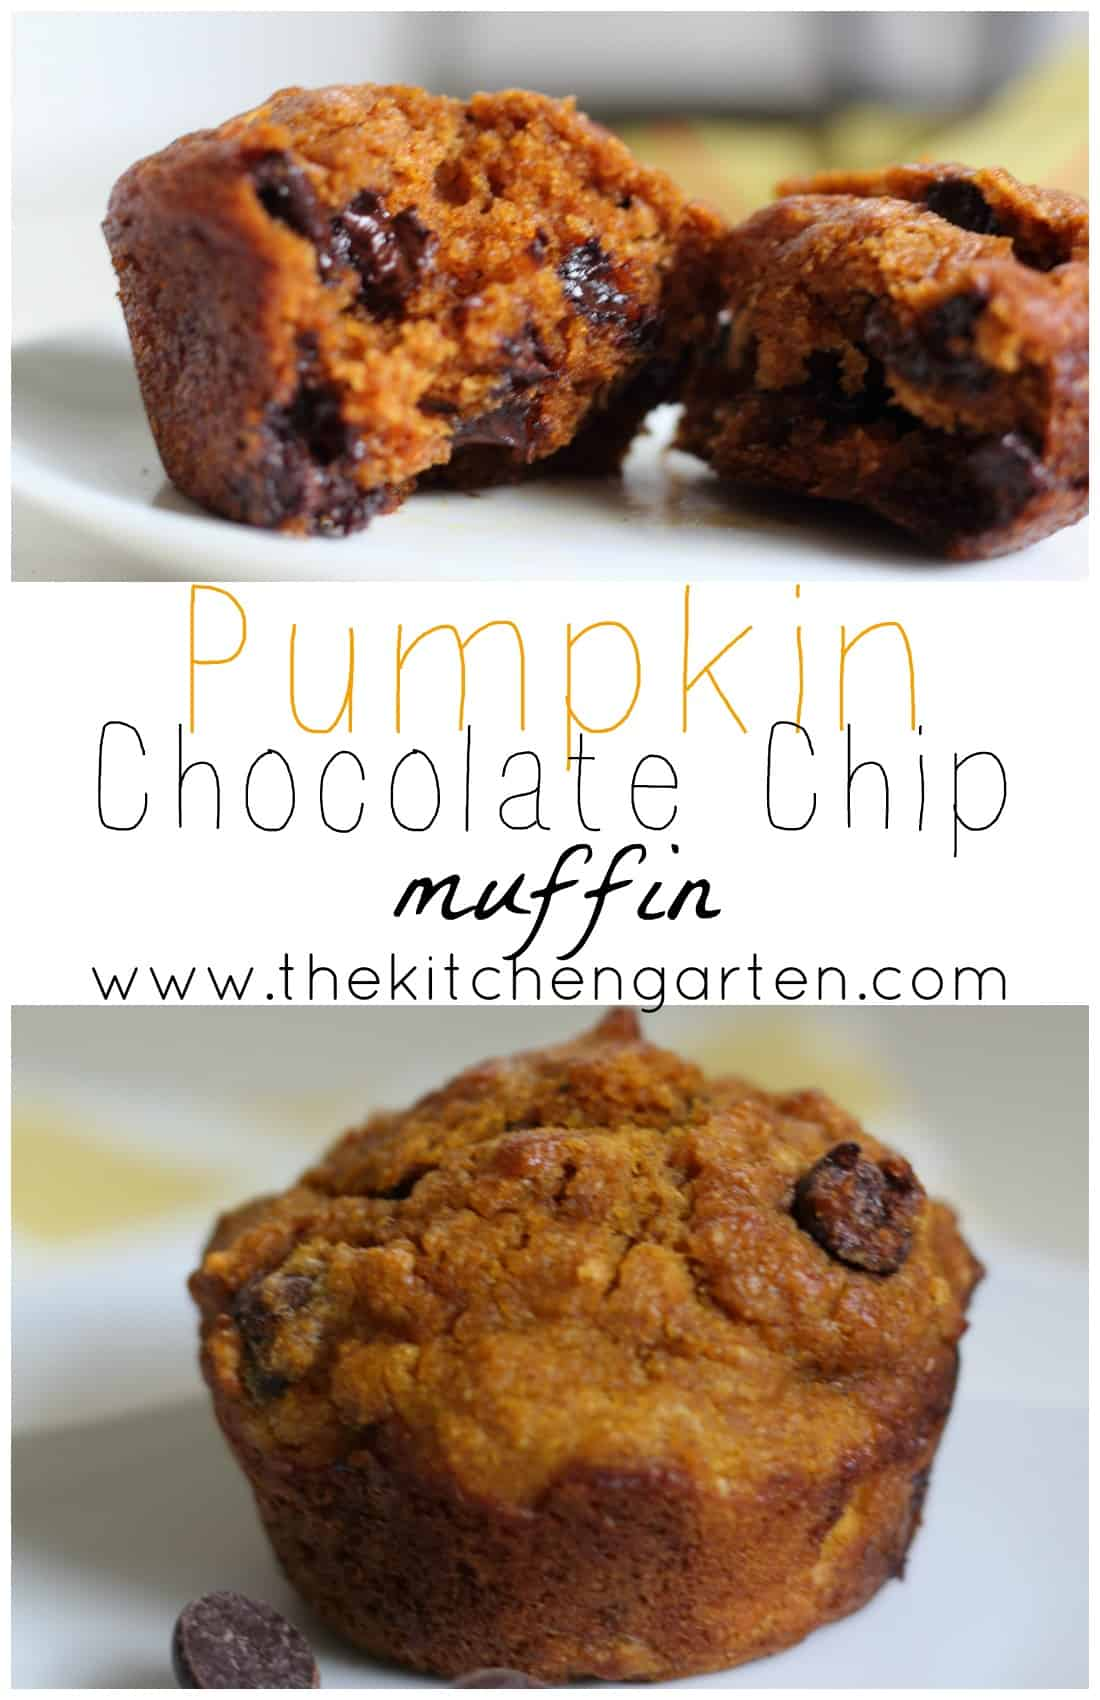 Pumpkin, chocolate, and whole grains! A perfect breakfast, snack, or anytime treat, these muffins are a family favorite and easy to make!